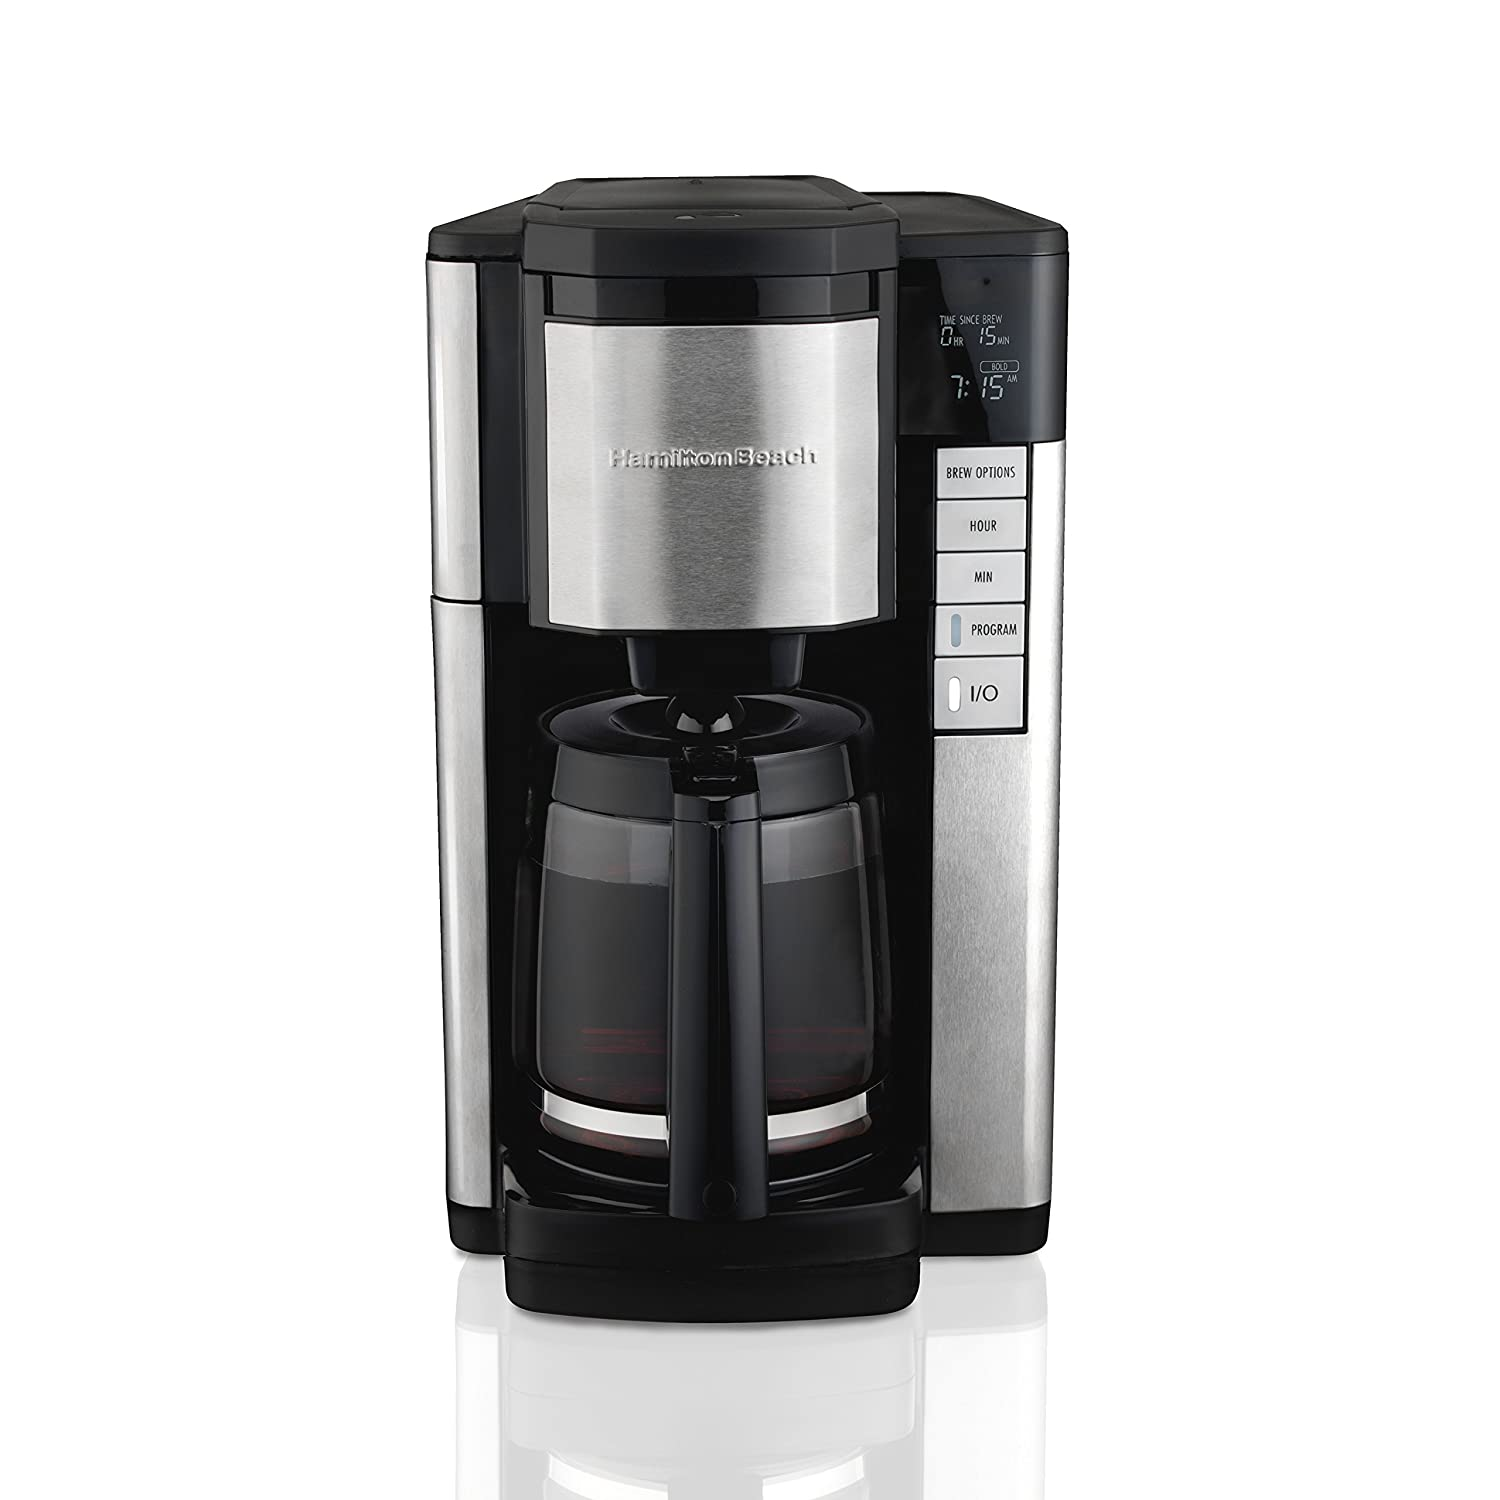 Hamilton Beach Programmable Coffee Maker, 12 Cup Carafe with Easy Refilling Access (46381), Black